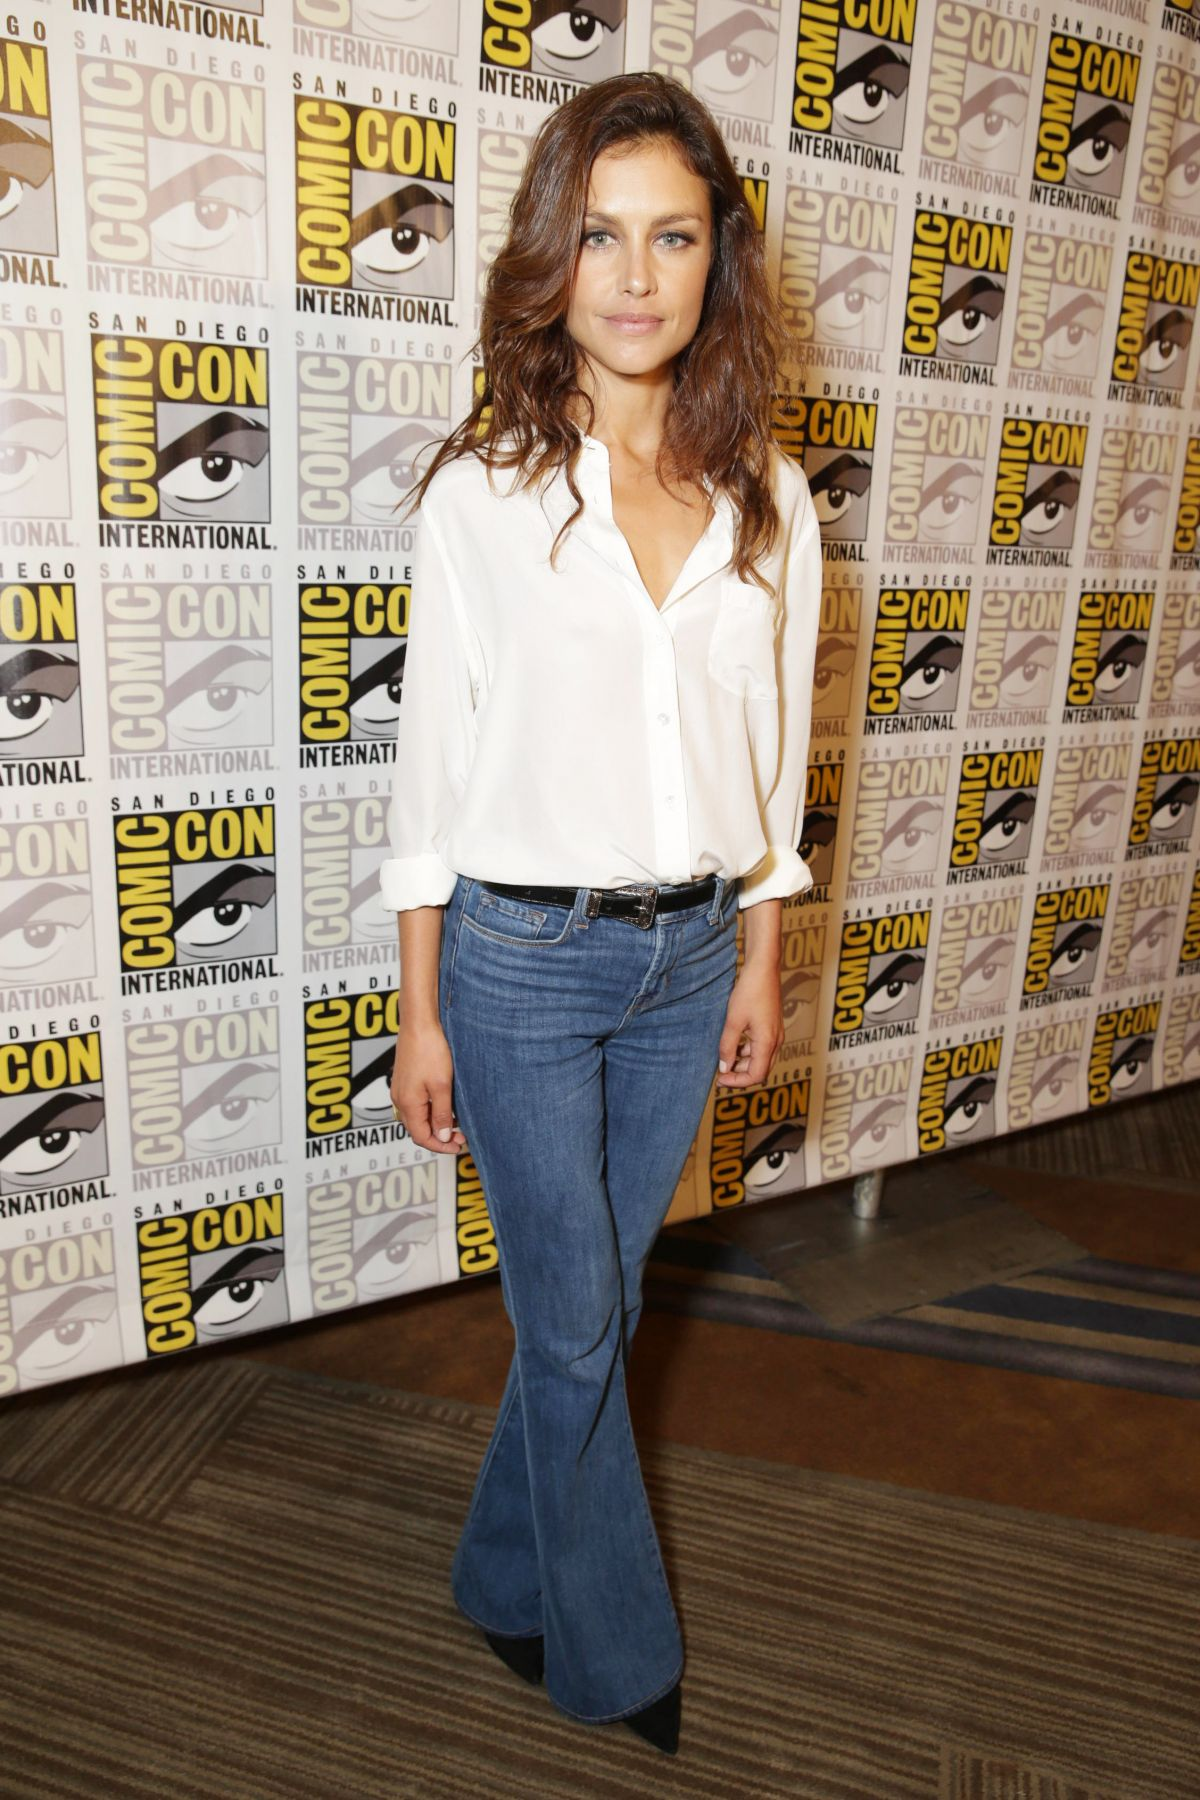 HANNAH WARE at Twentieth Century Fox Panel at Comic-con in San Diego